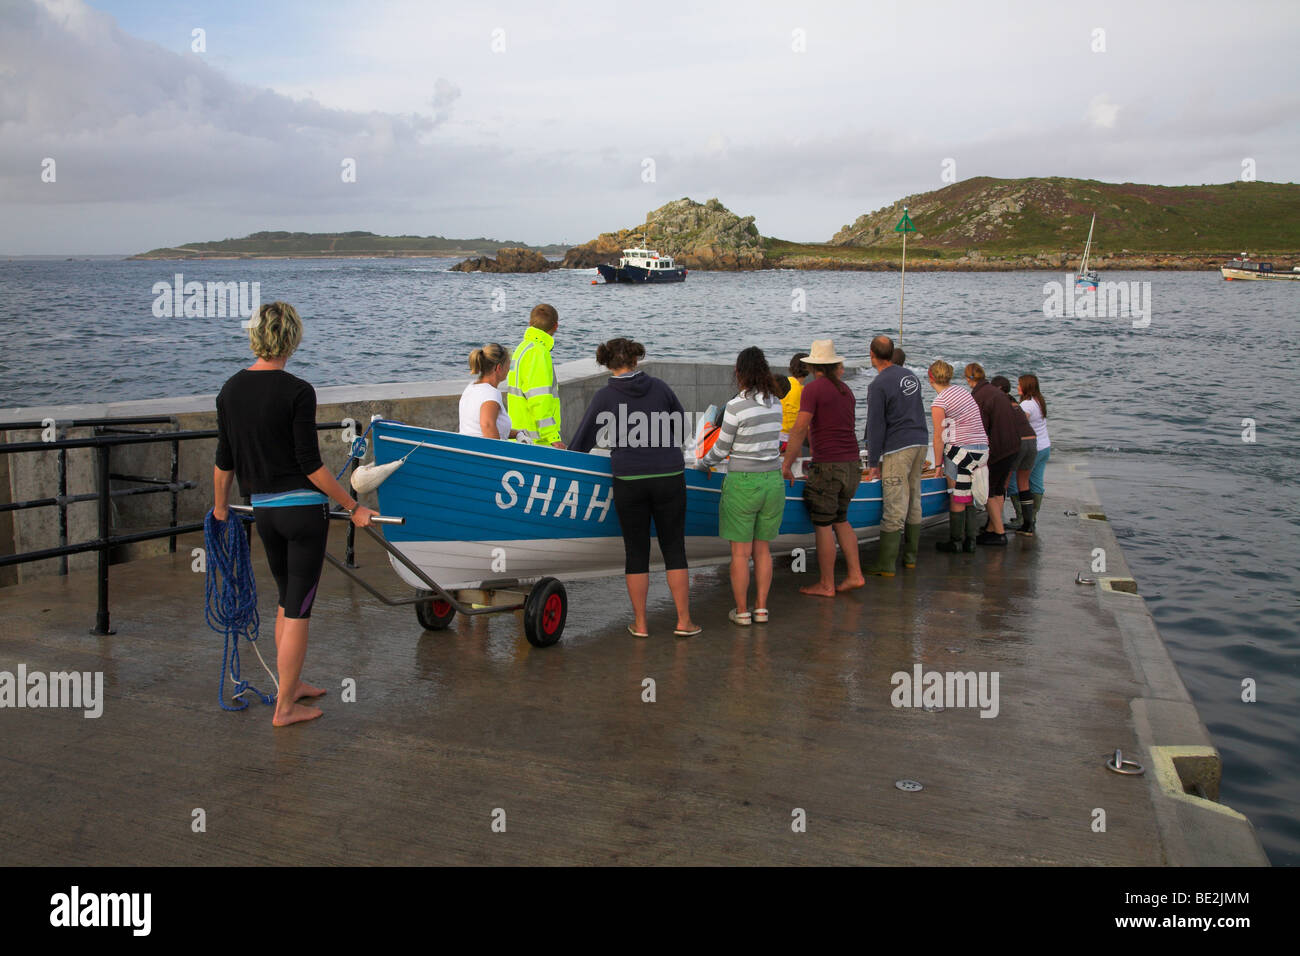 Lauching a boat for gig racing on the Isles of Scilly - Stock Image